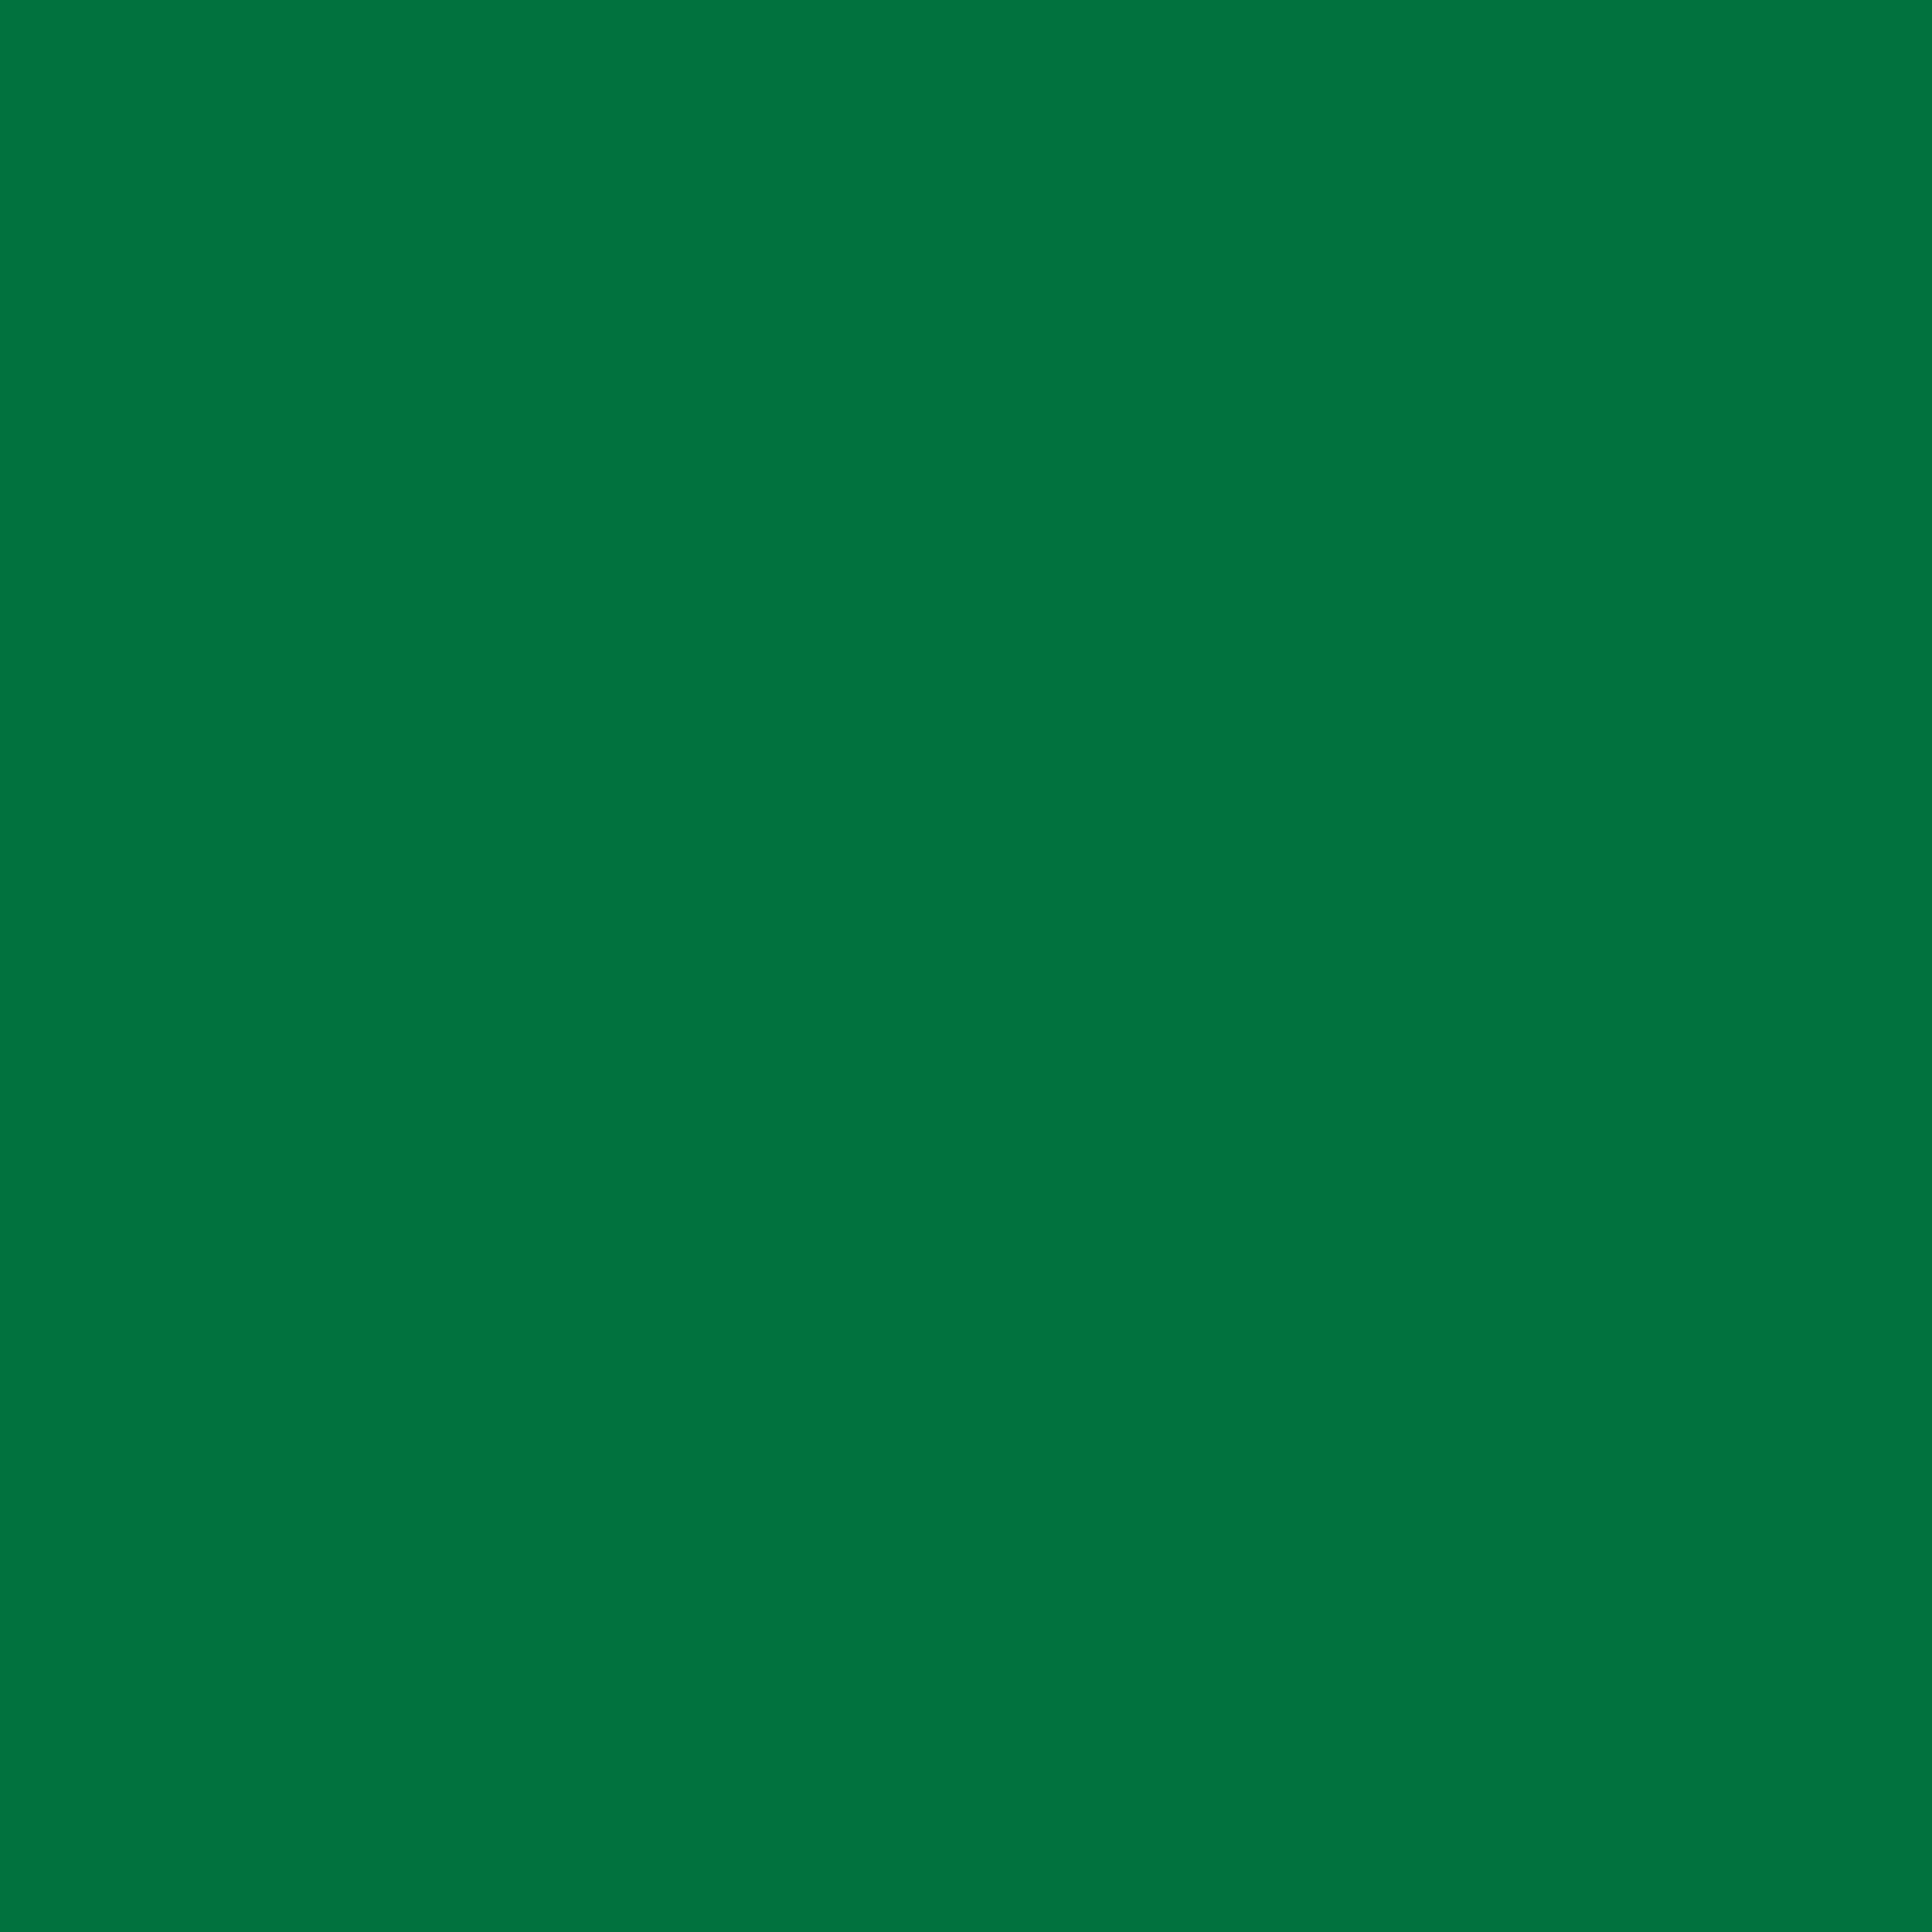 2732x2732 Dartmouth Green Solid Color Background